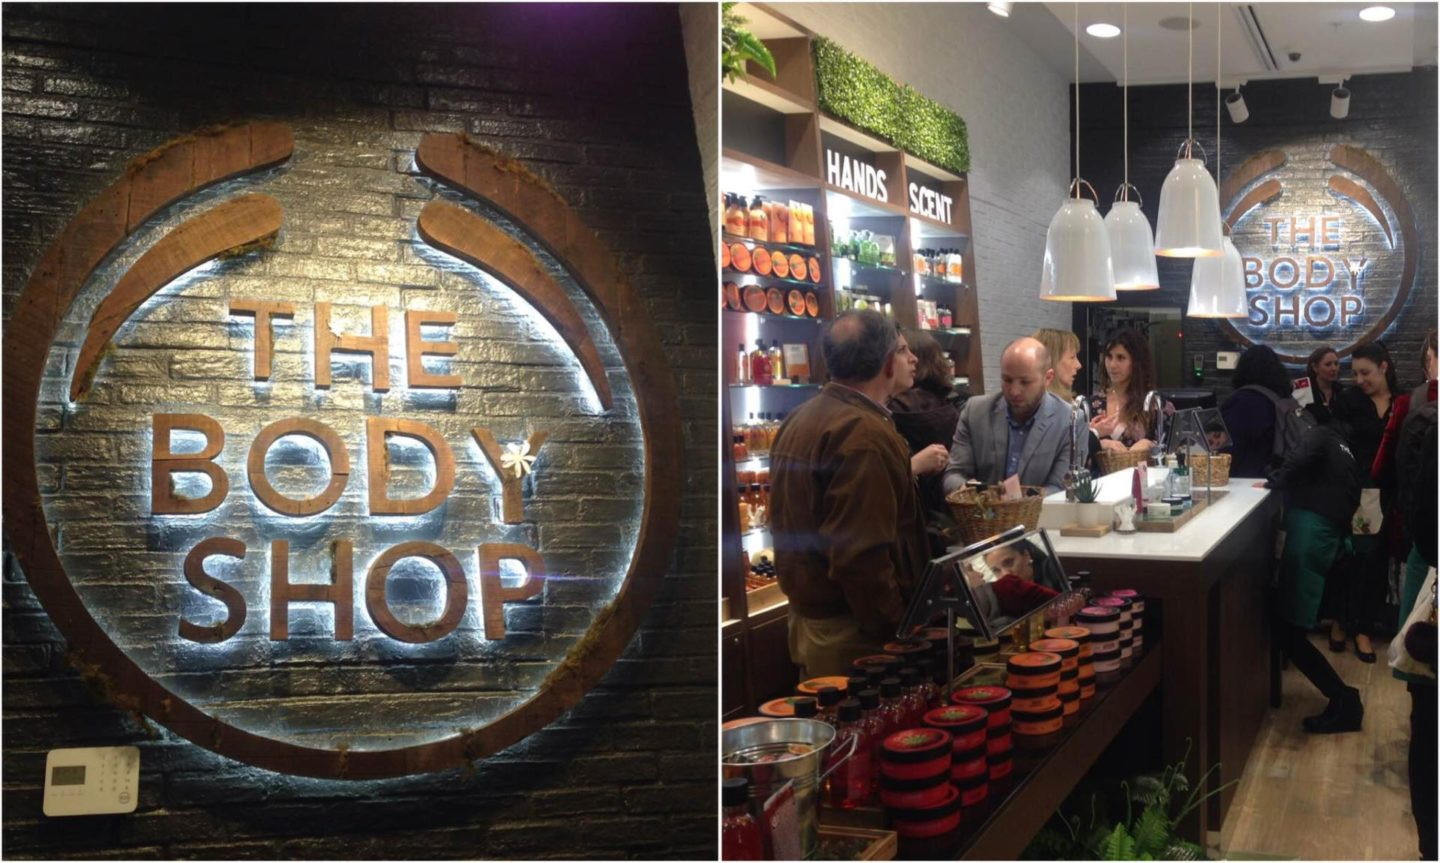 ¡The Body Shop is already in Chile!